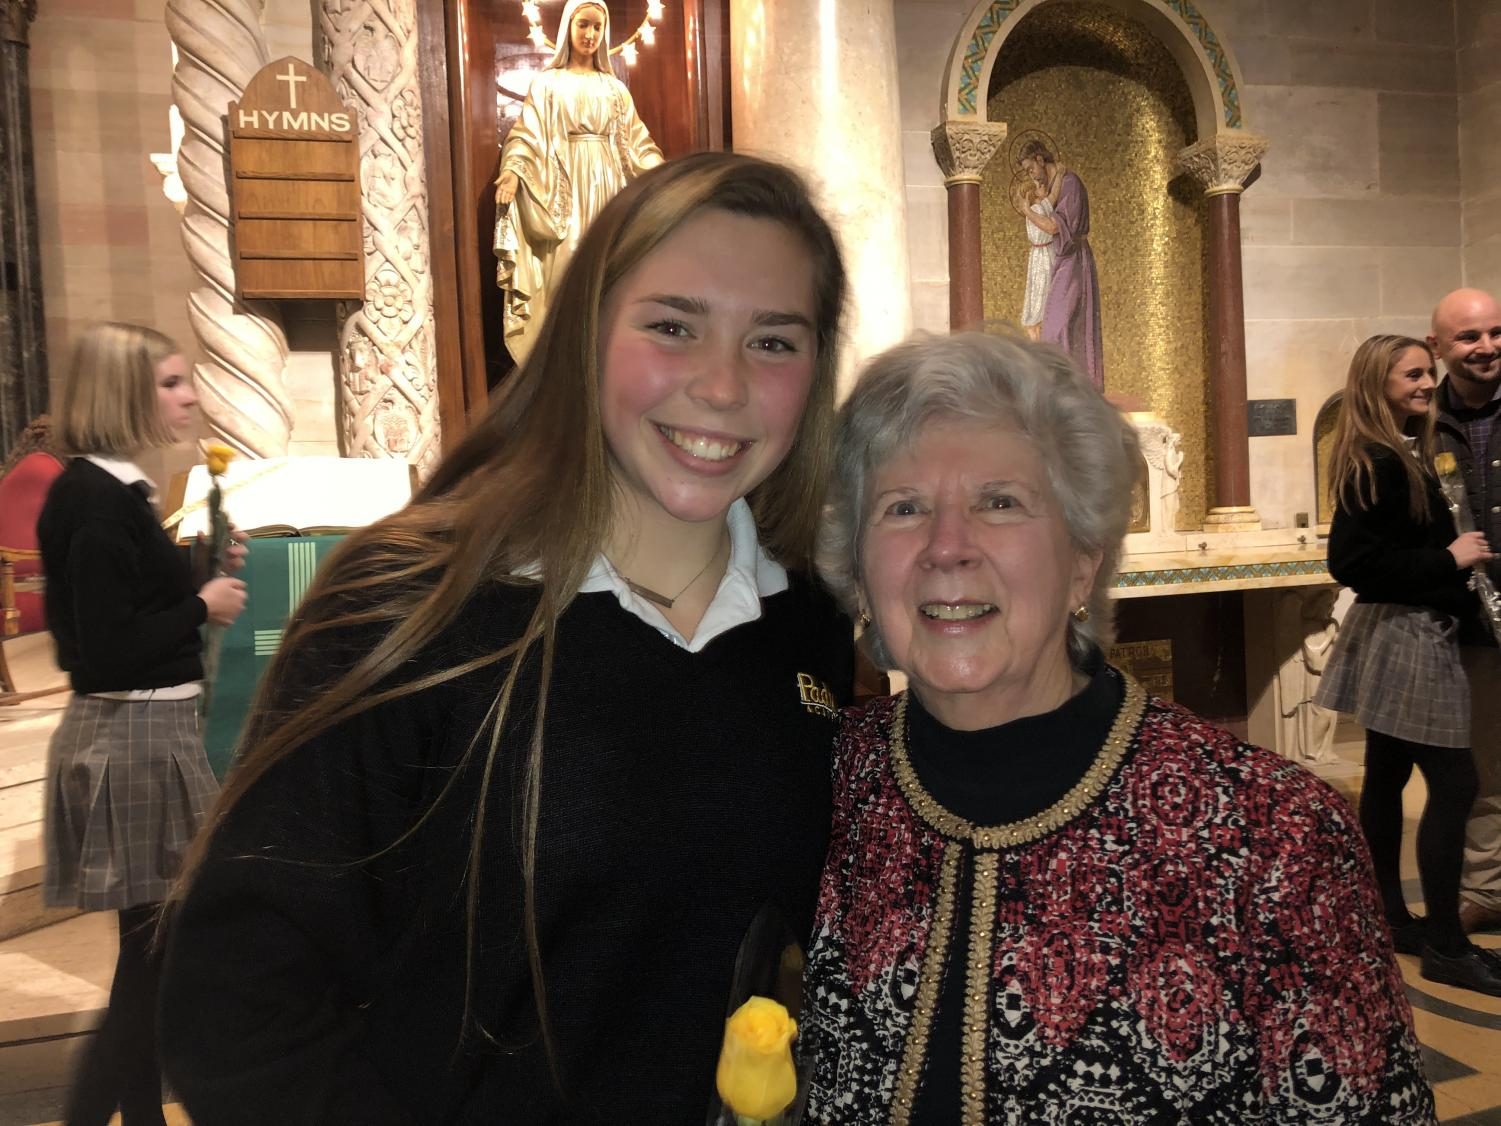 Emma Jo and her grandmother, Mary, at the Junior Ring Ceremony.